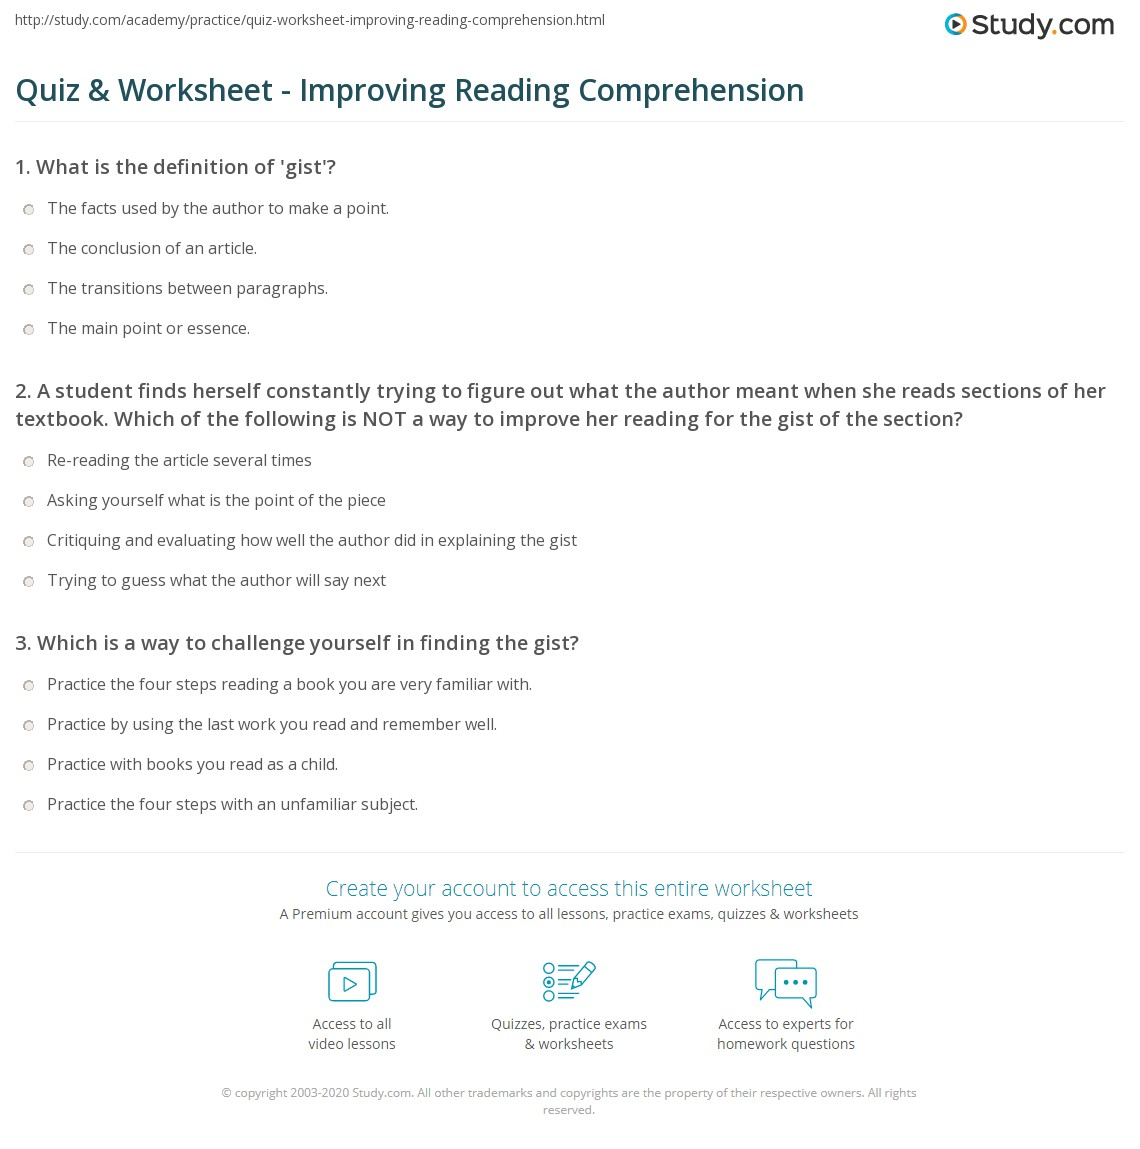 Quiz Worksheet Improving Reading Comprehension Study